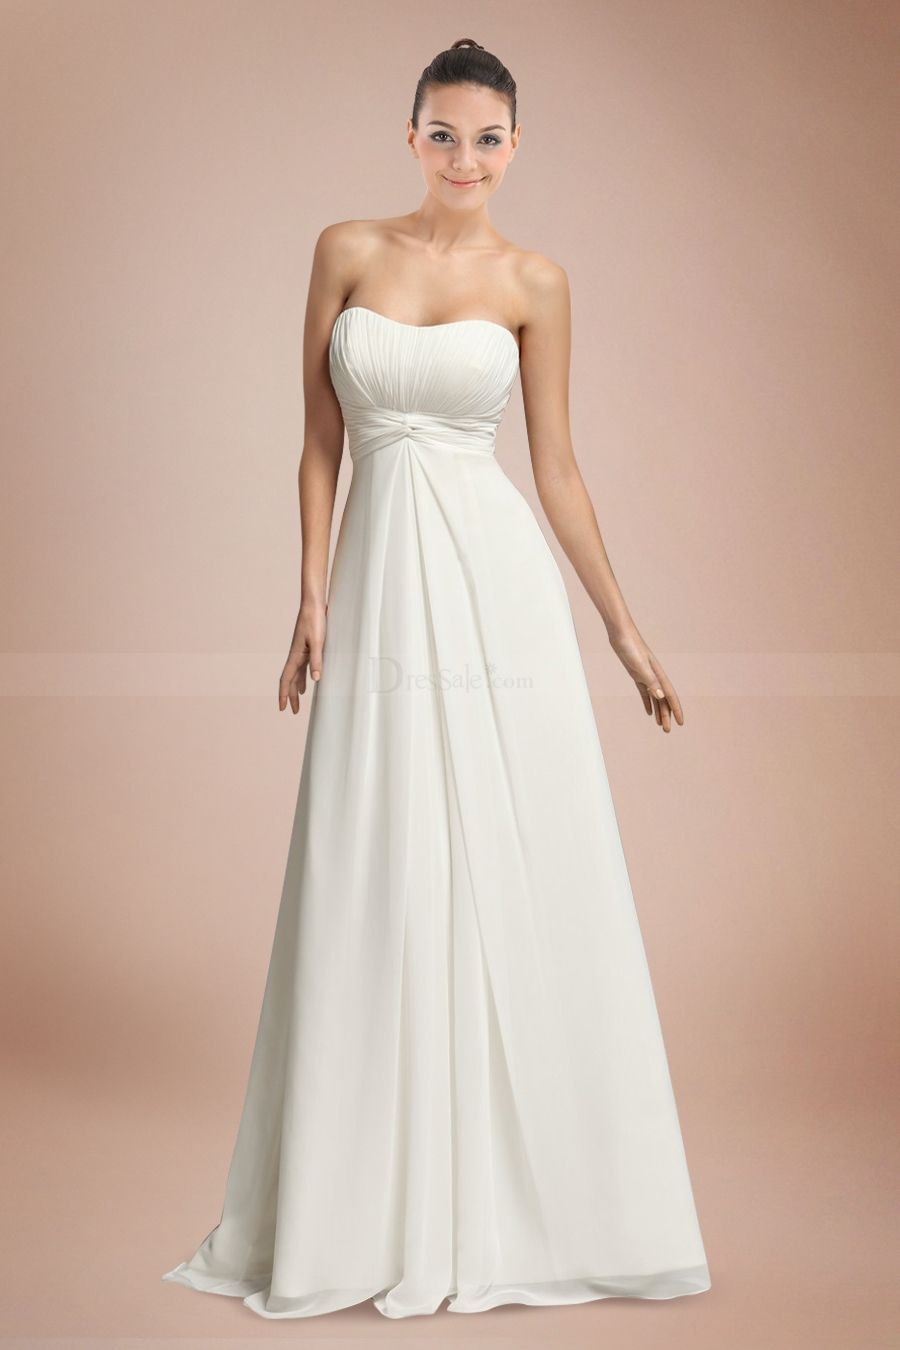 Short maternity wedding dresses  CooLingerie Something You Need to Know About Empire Waist and